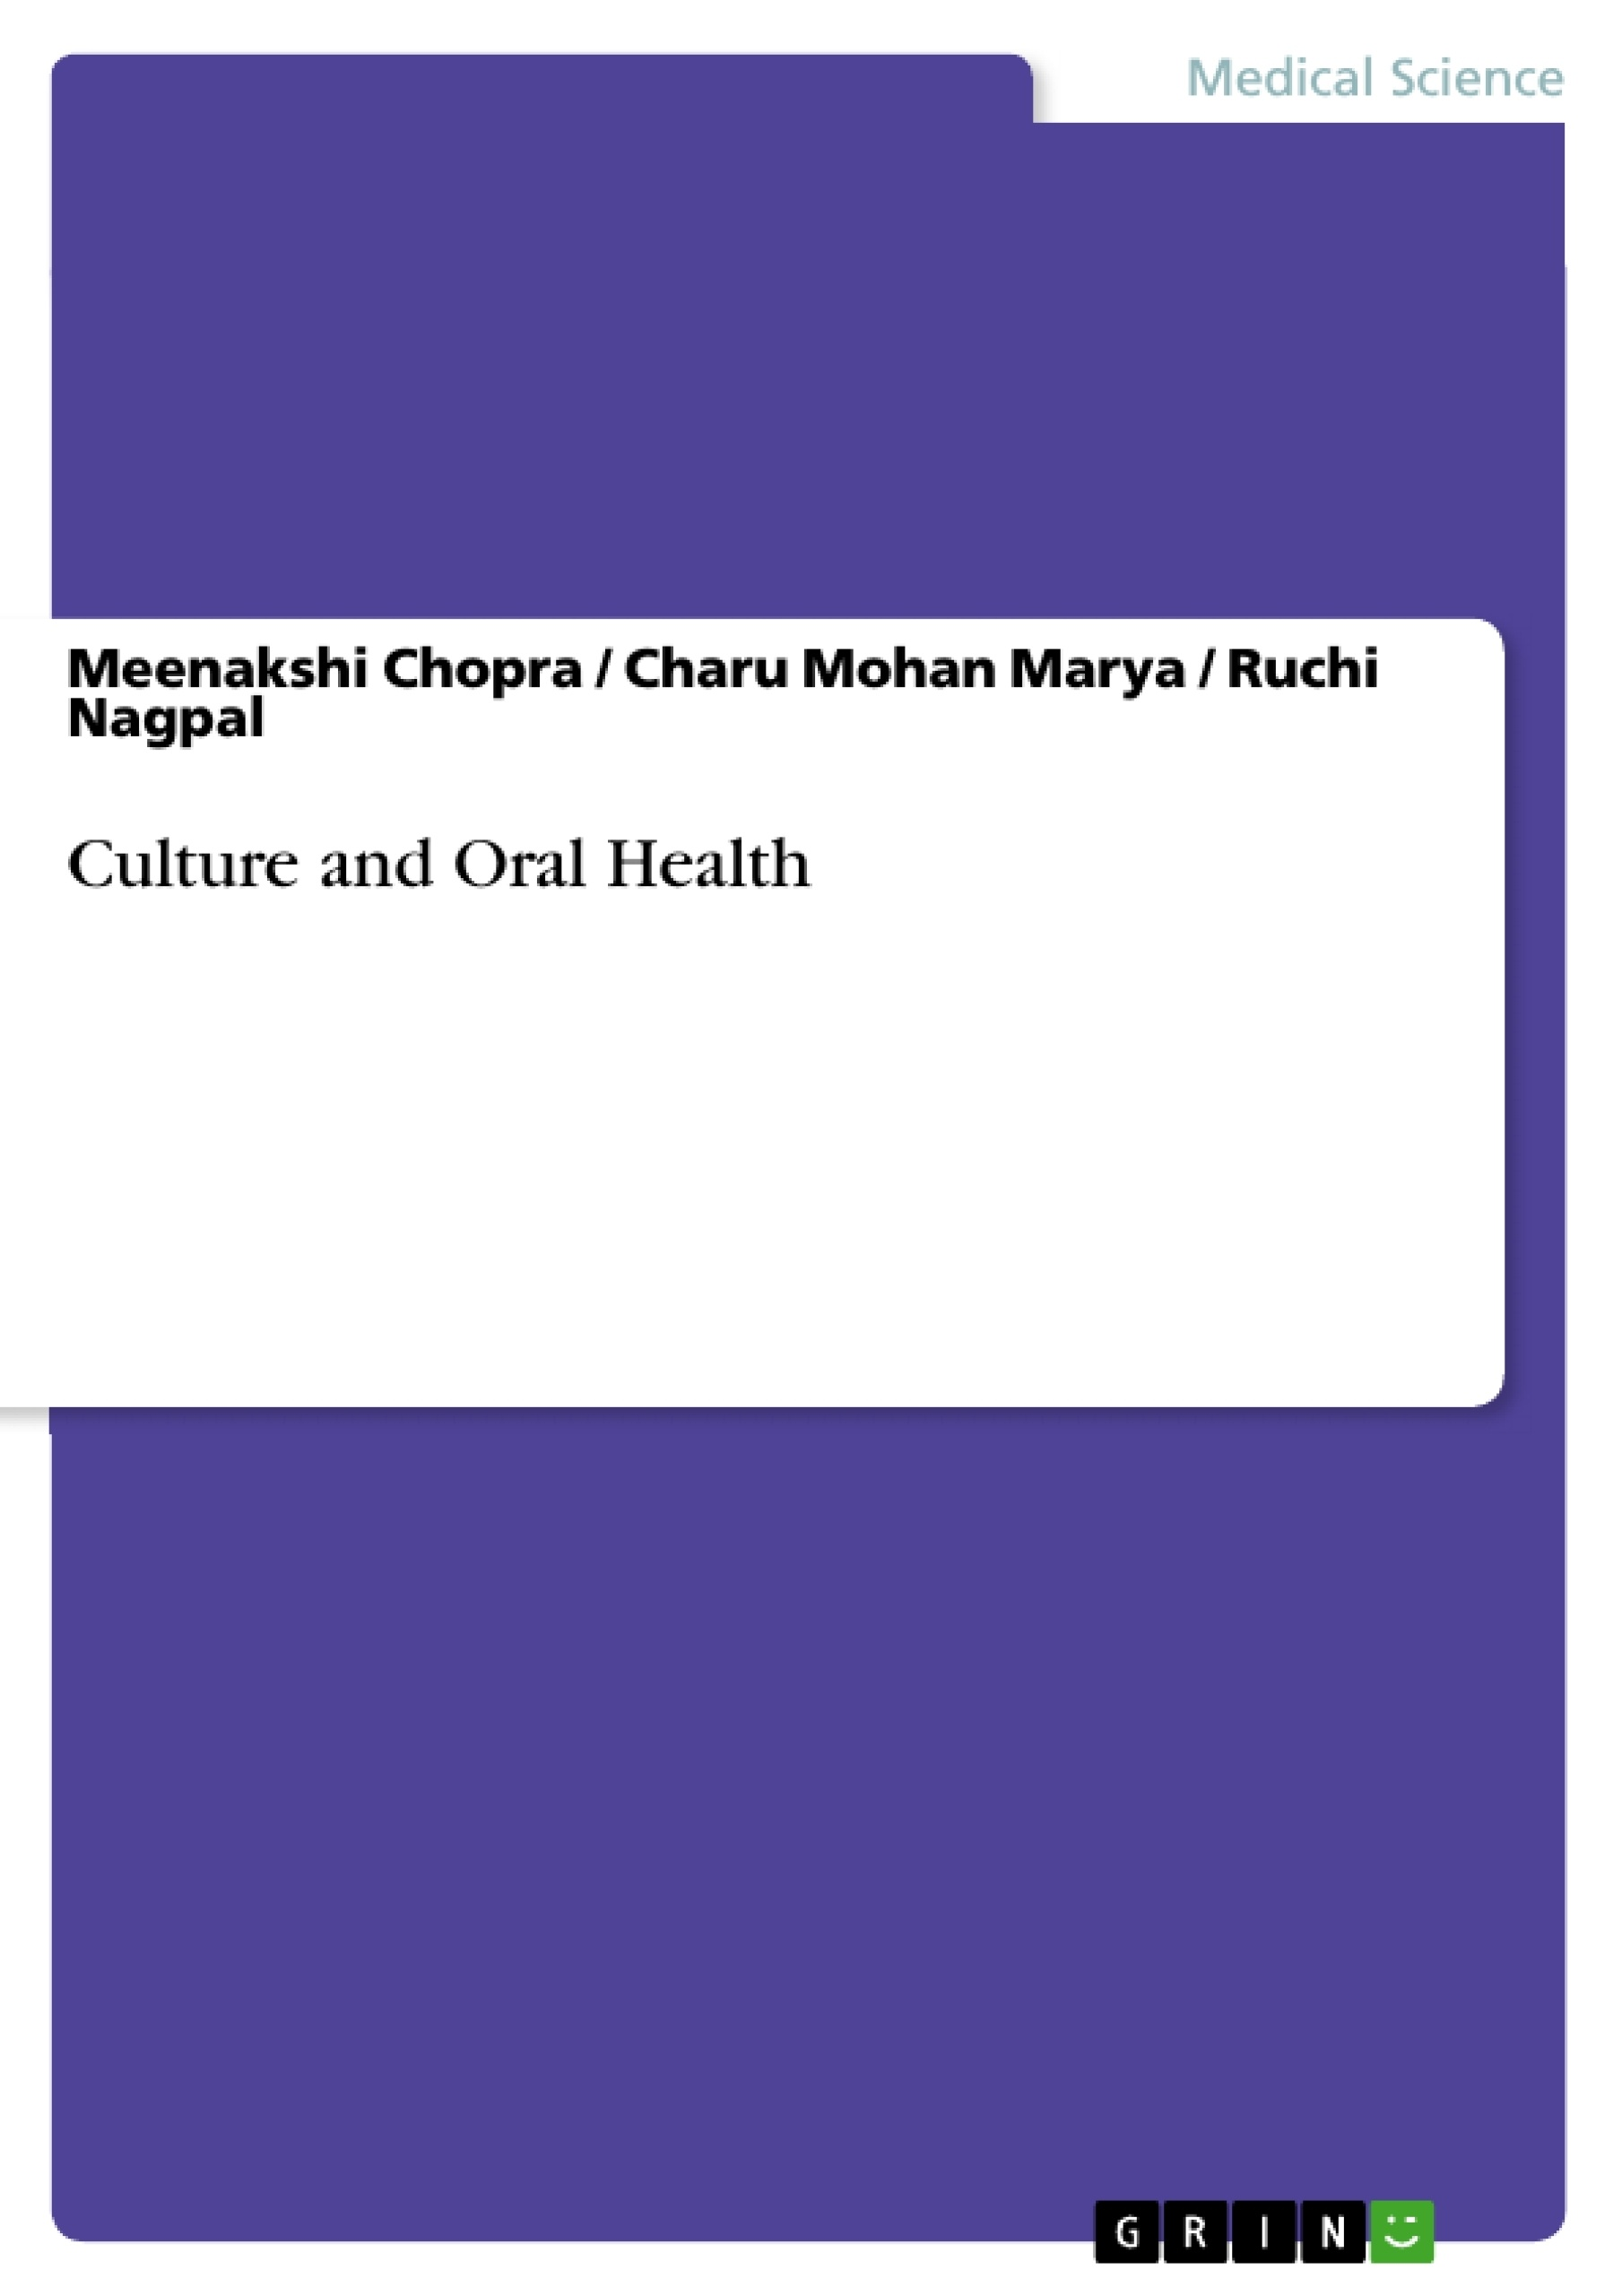 Title: Culture and Oral Health